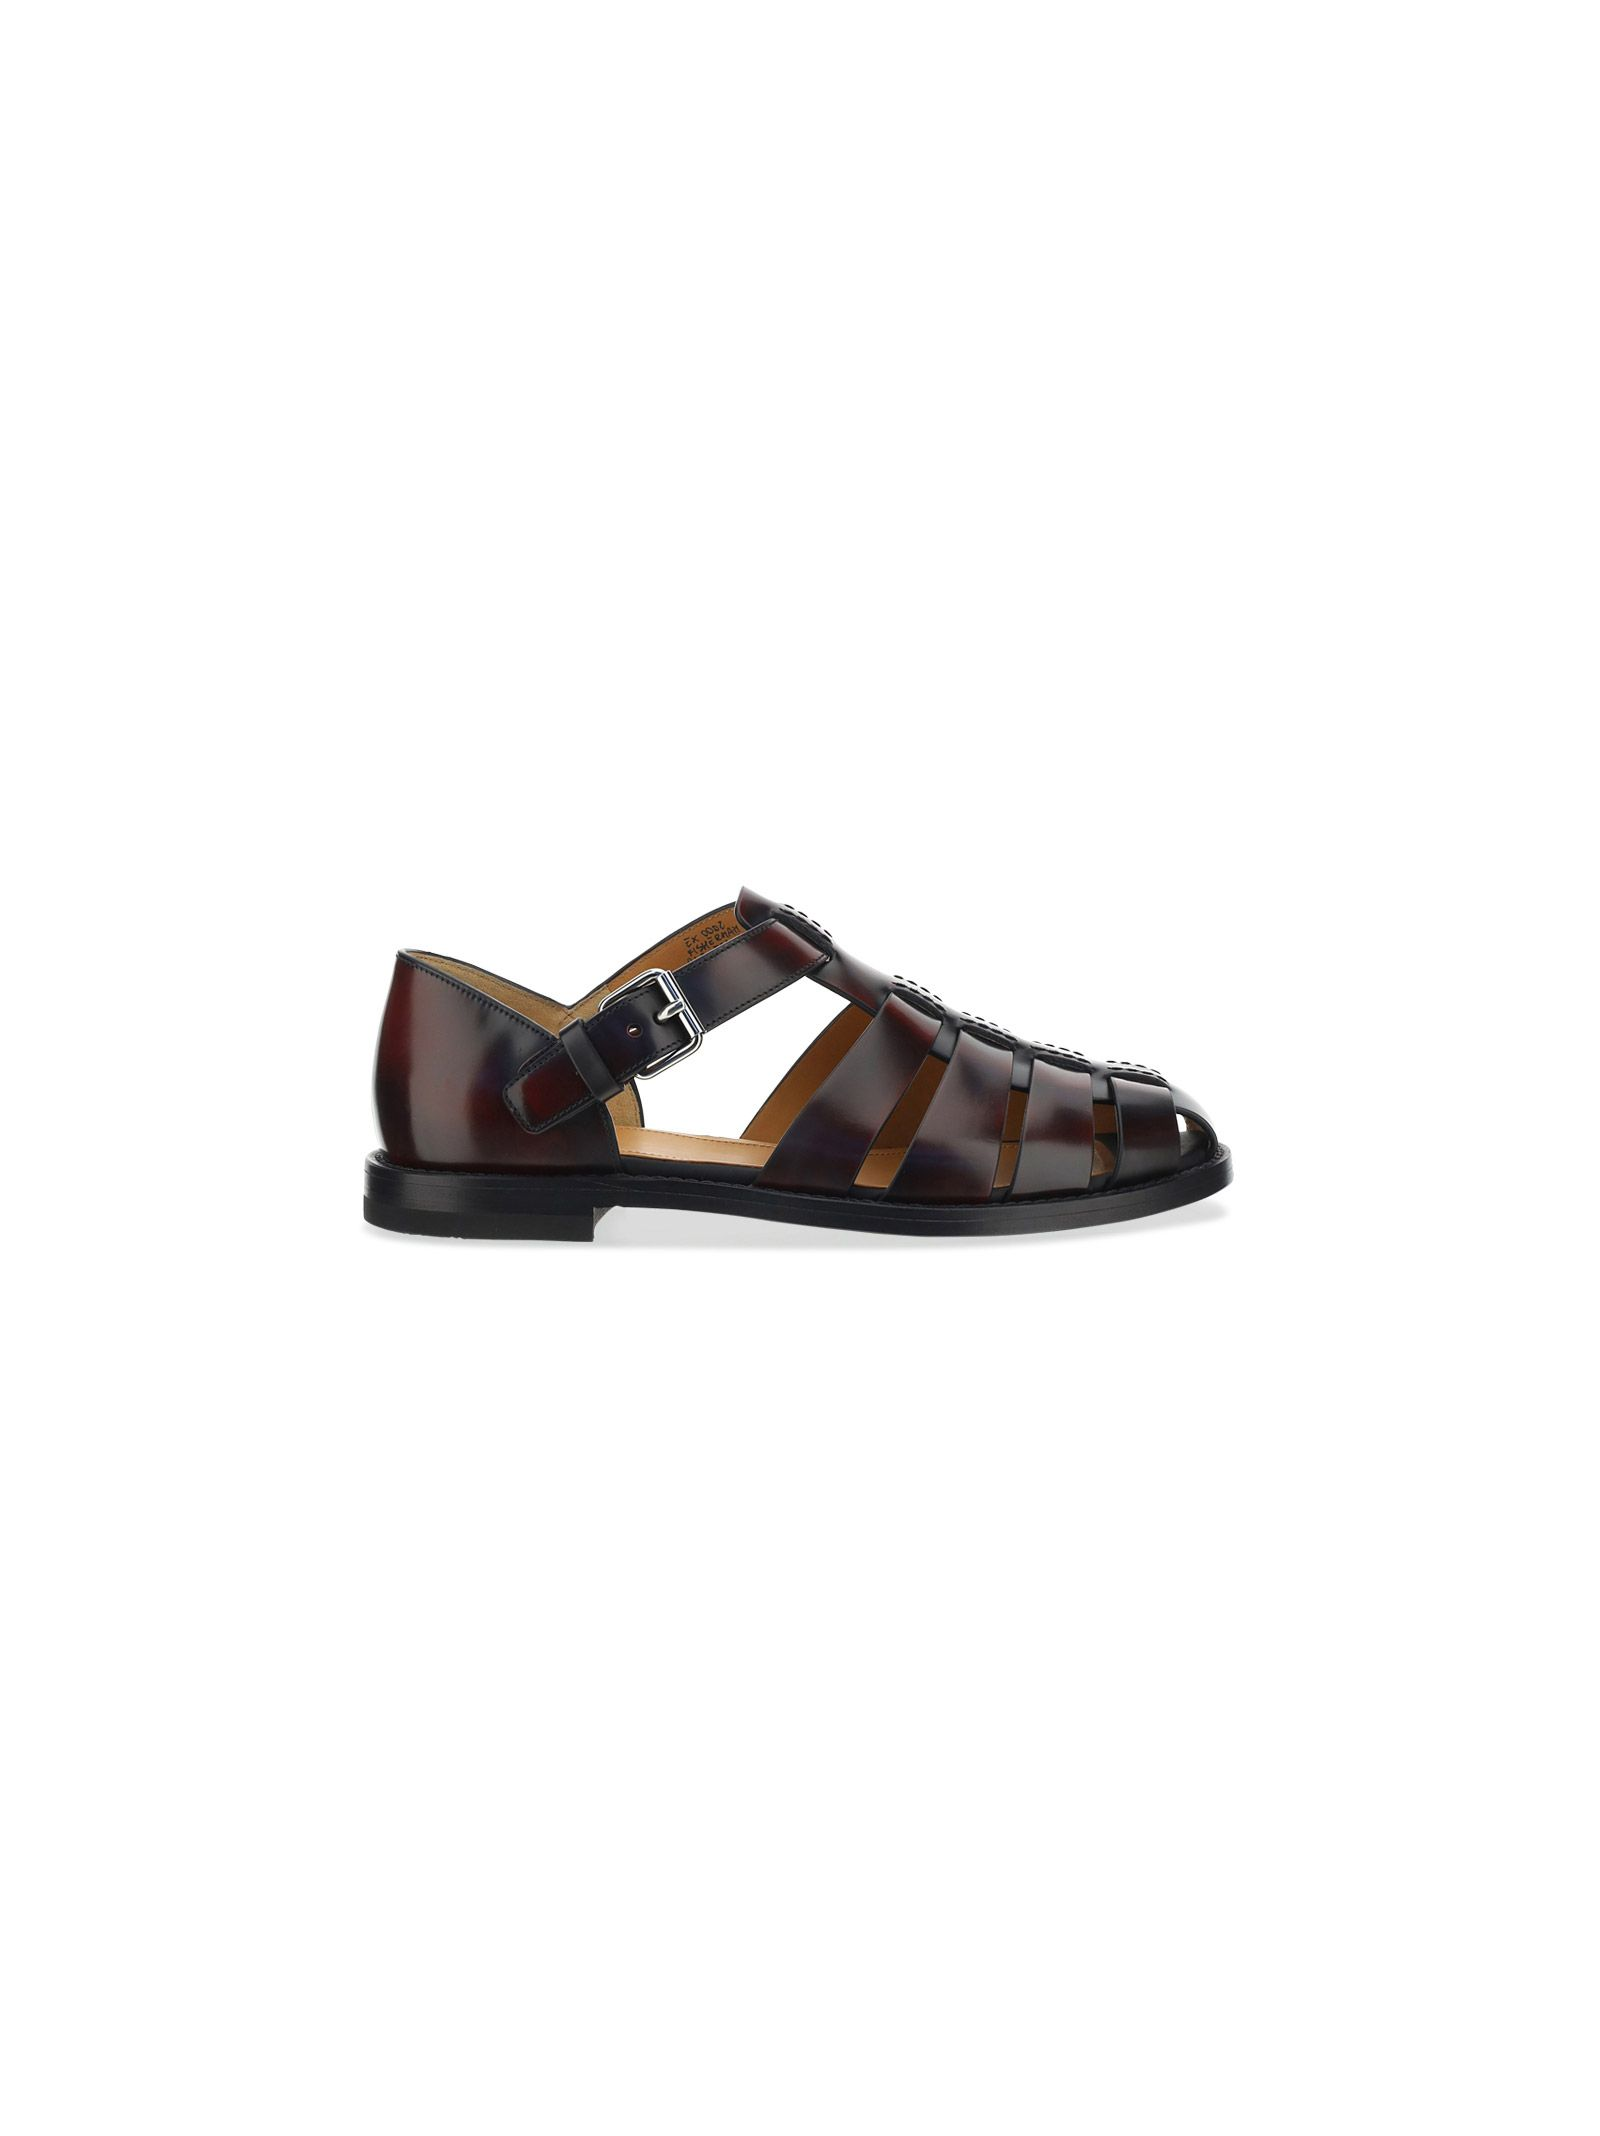 Church's Leathers CHURCH'S MEN'S EX0002FF000009LGF0ADY BURGUNDY OTHER MATERIALS SANDALS